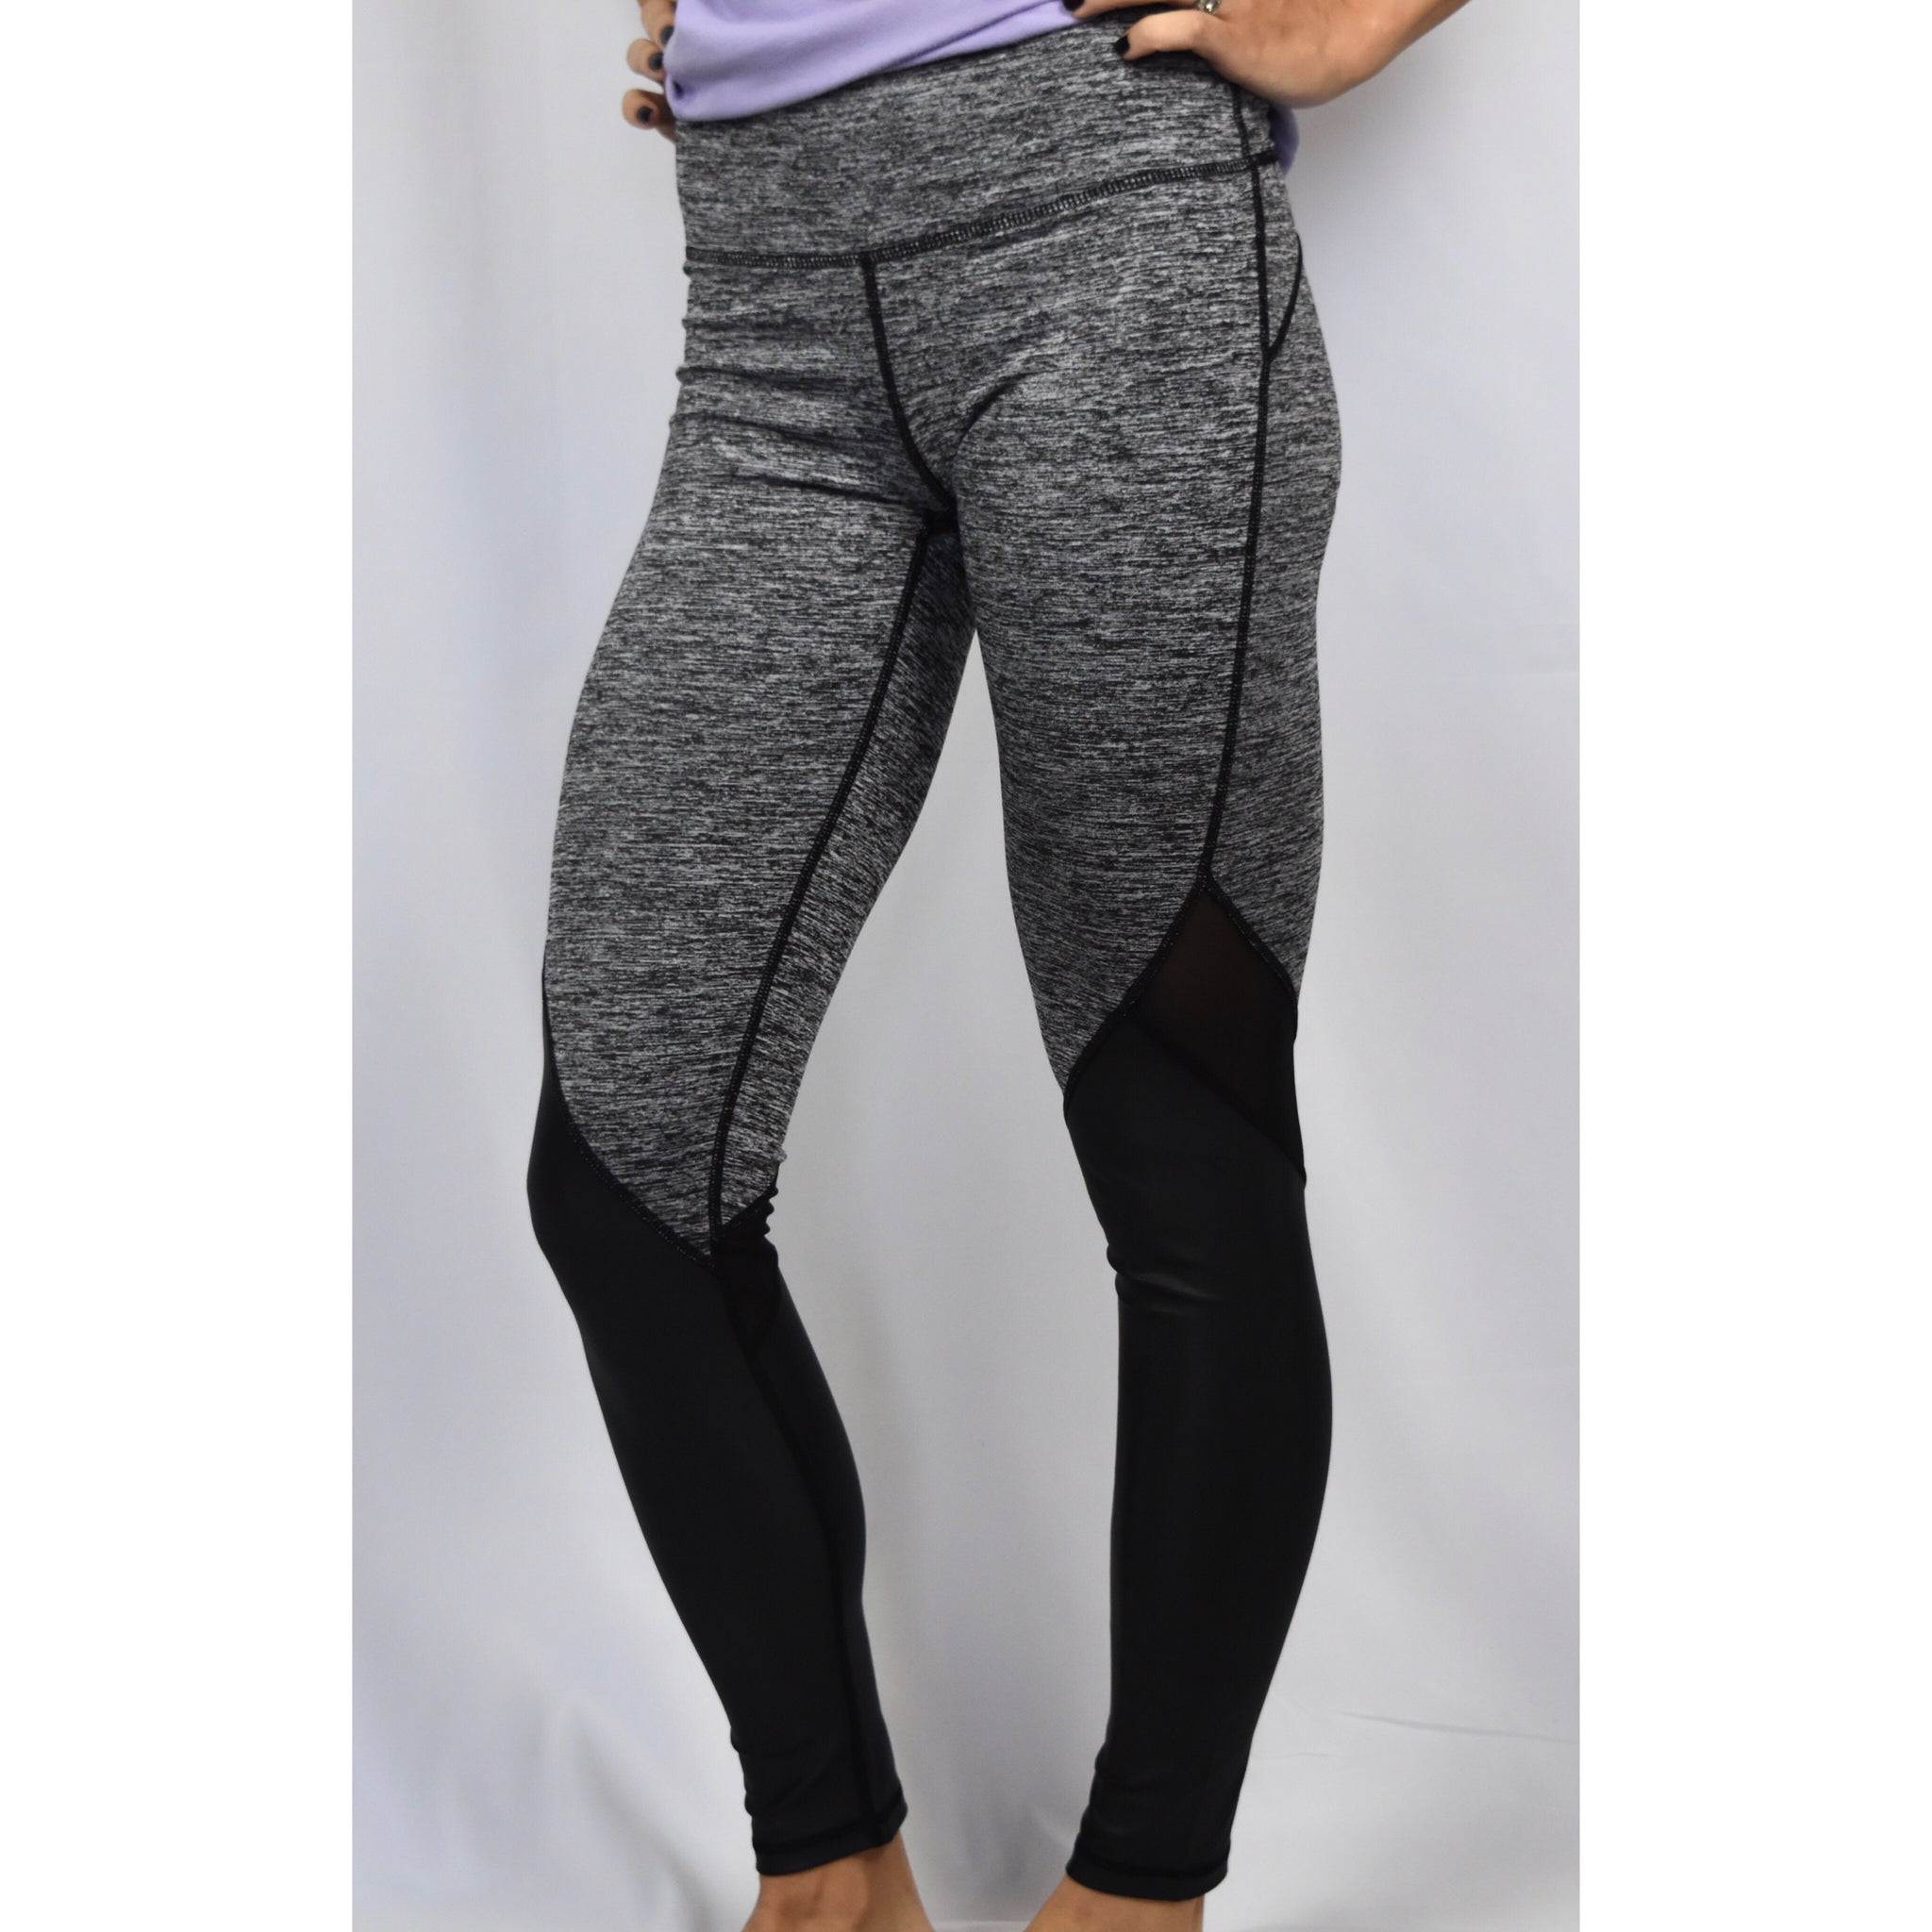 Heather Grey Leggings